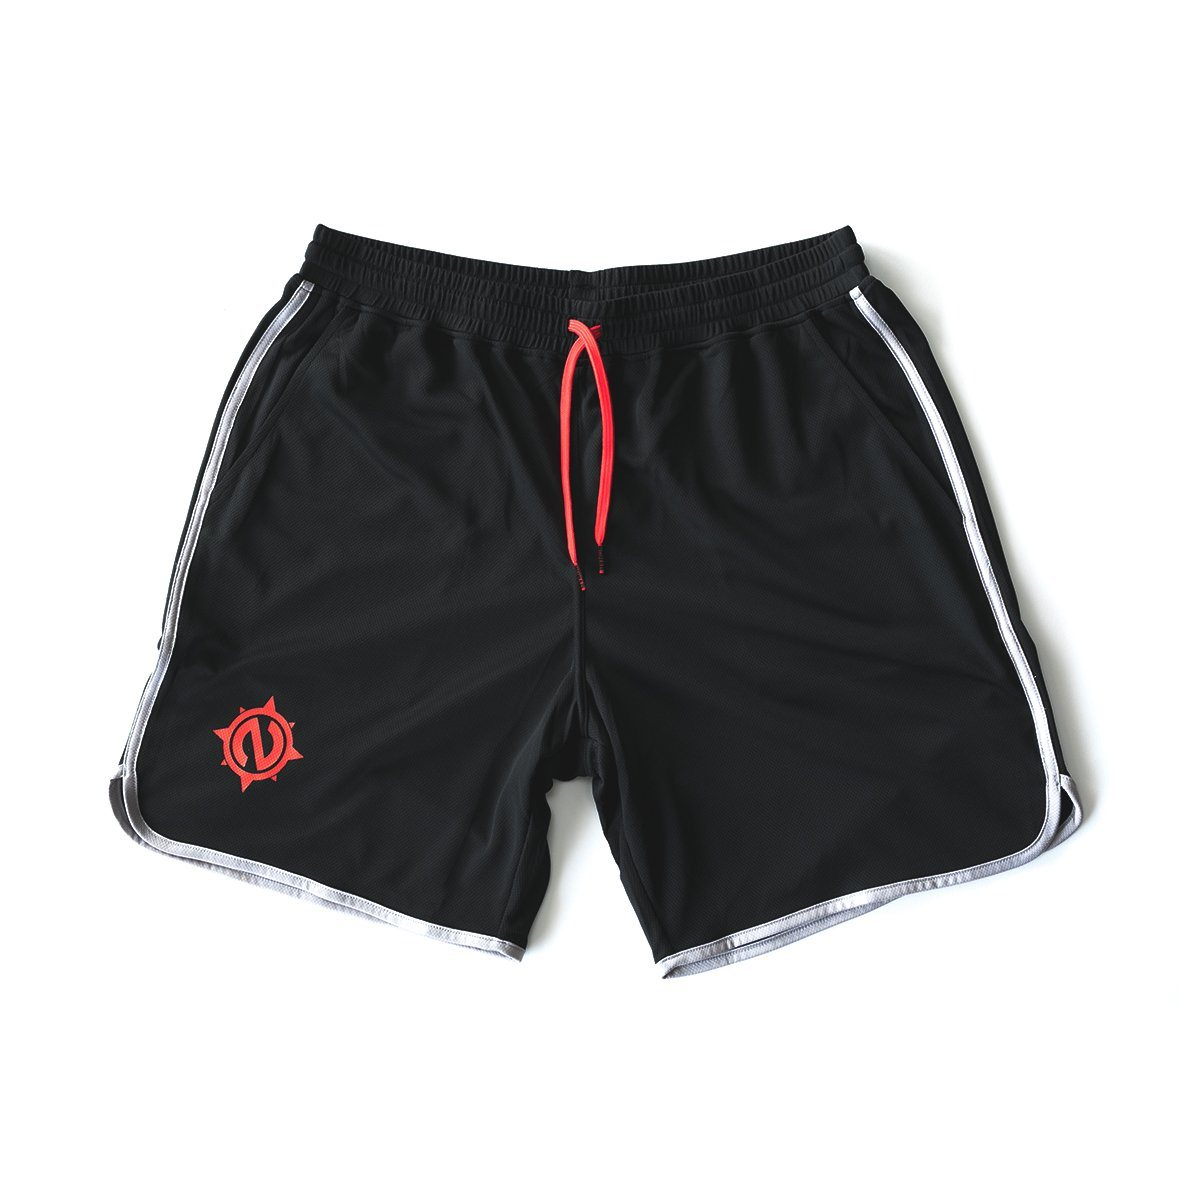 Gym Trunks - Gym Trunks - Black/Gray